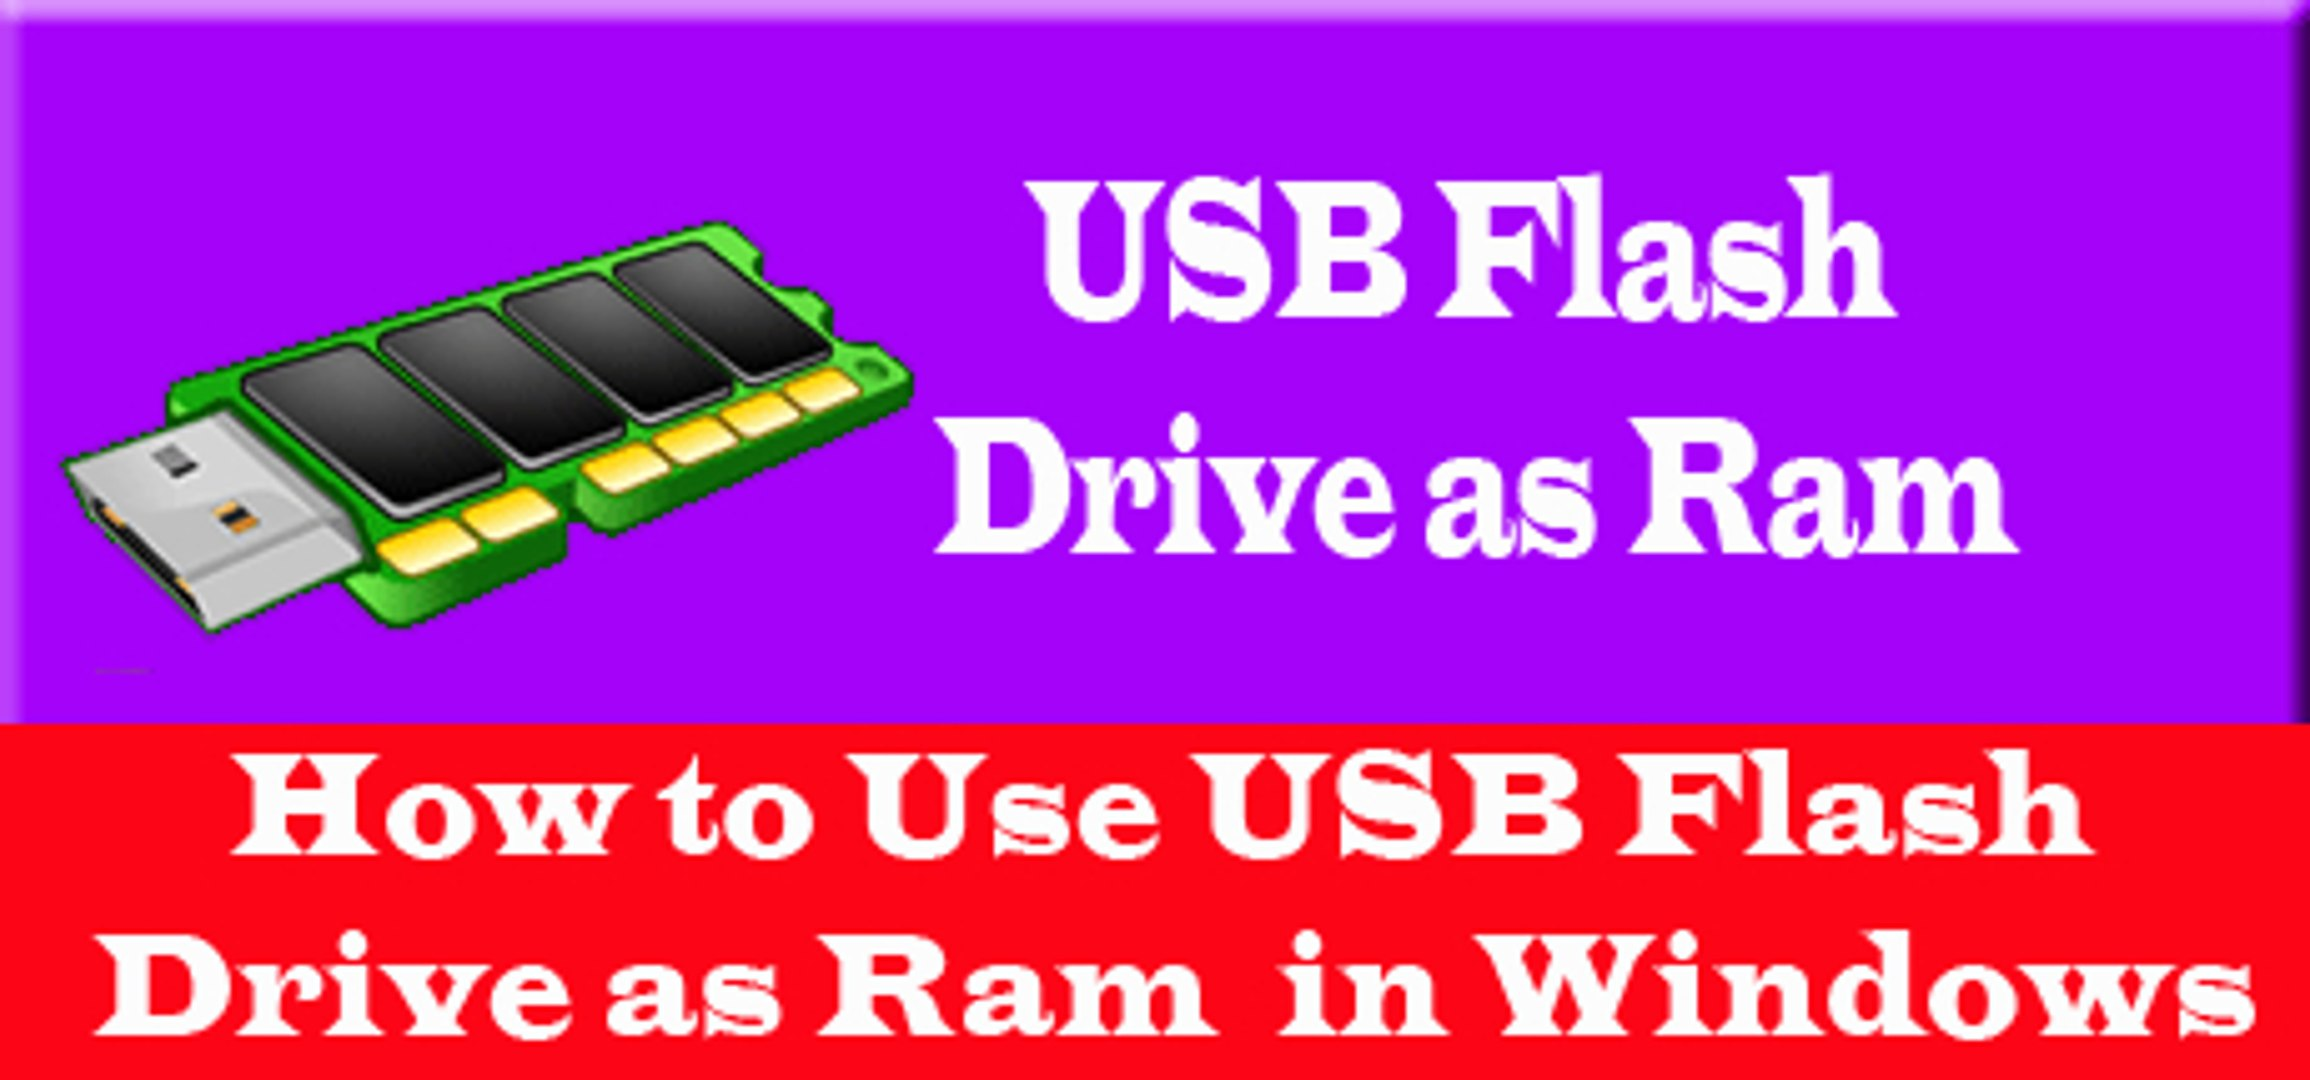 How To Use Usb Flash Drive As Ram In Windows Vidhippo Com Video Dailymotion